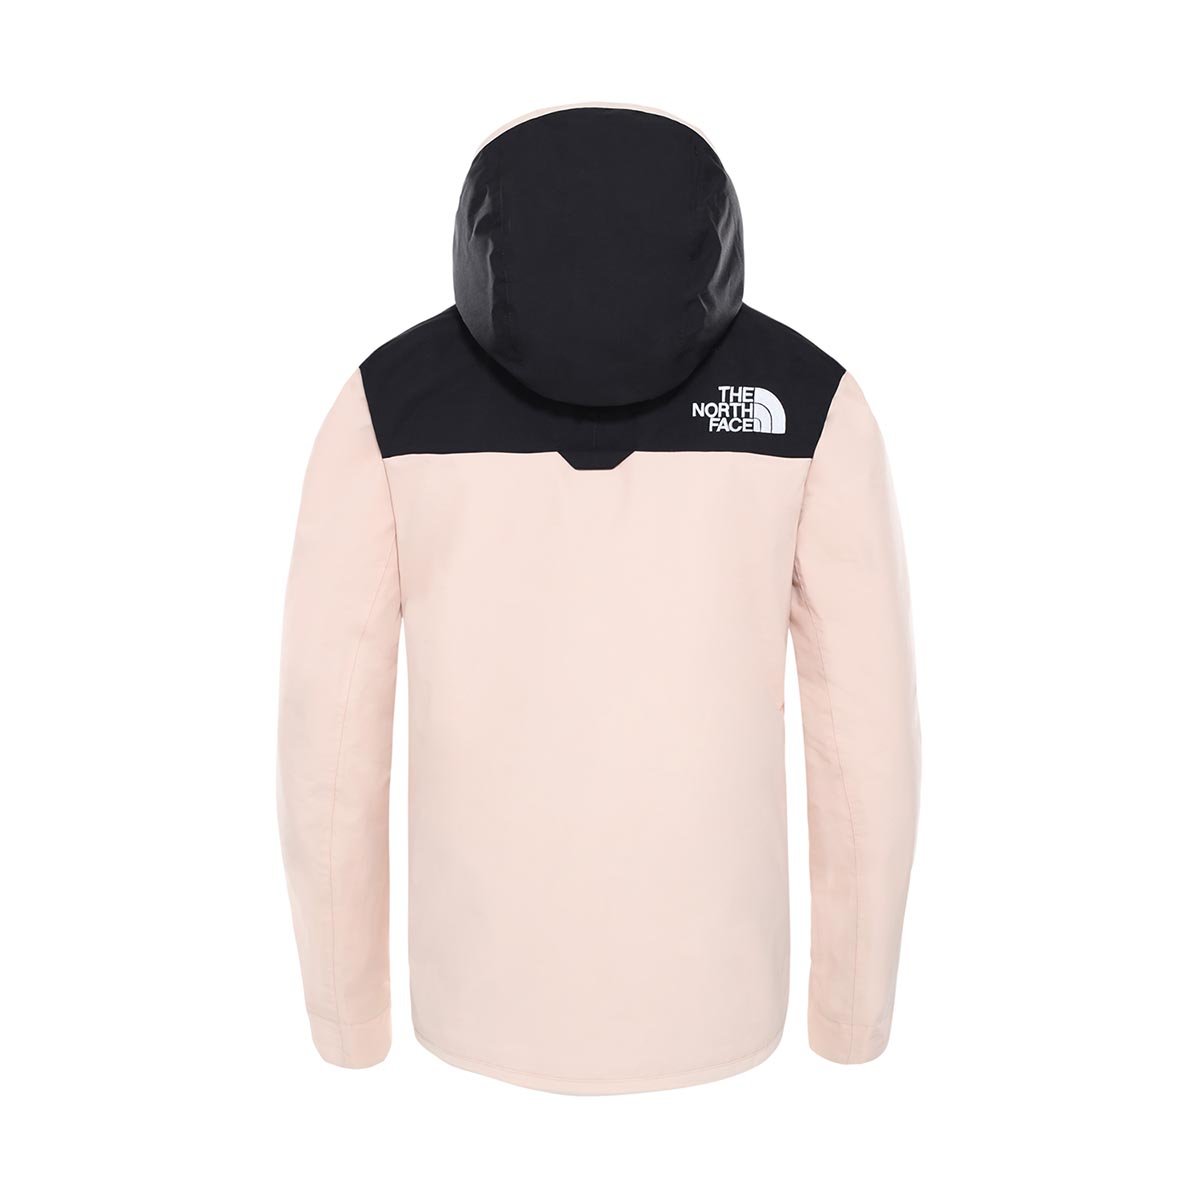 THE NORTH FACE - SUPERLU JACKET